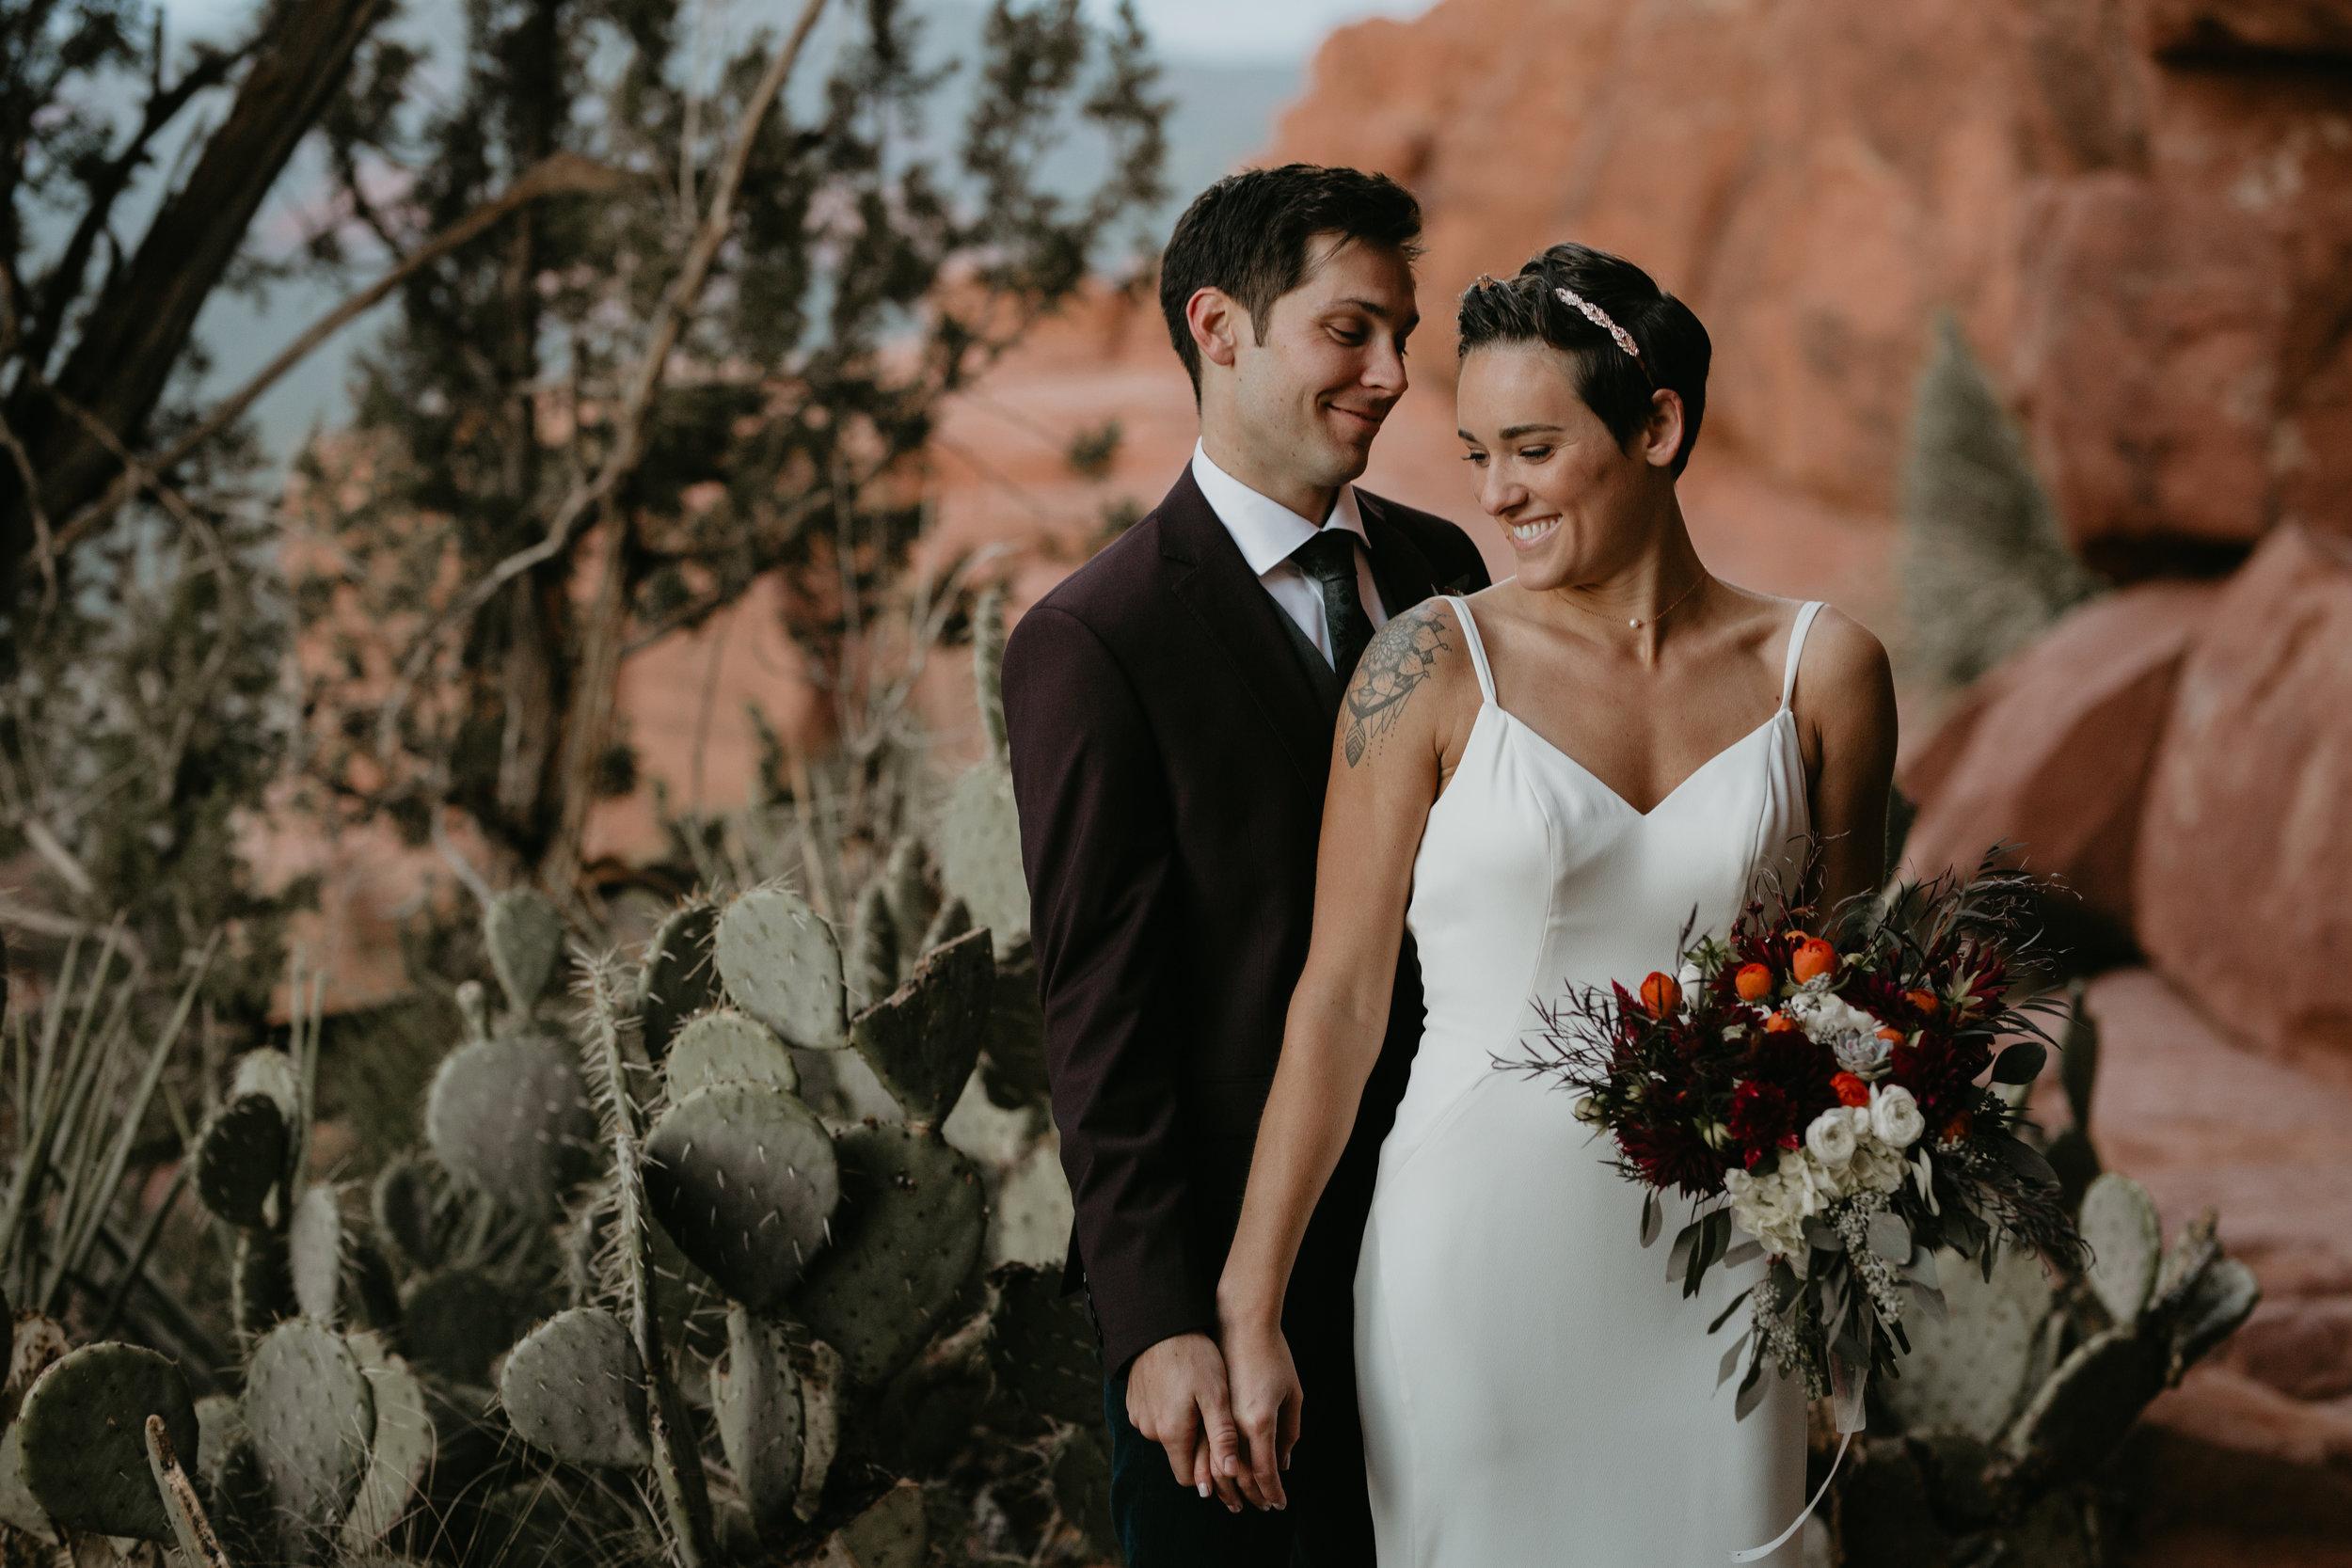 nicole-daacke-photography-sedona-arizona-adventurous-elopement-adventure-elope-photographer-cathedral-rock-sedona-vortex-intimate-wedding-hiking-elopement-photographer-15.jpg